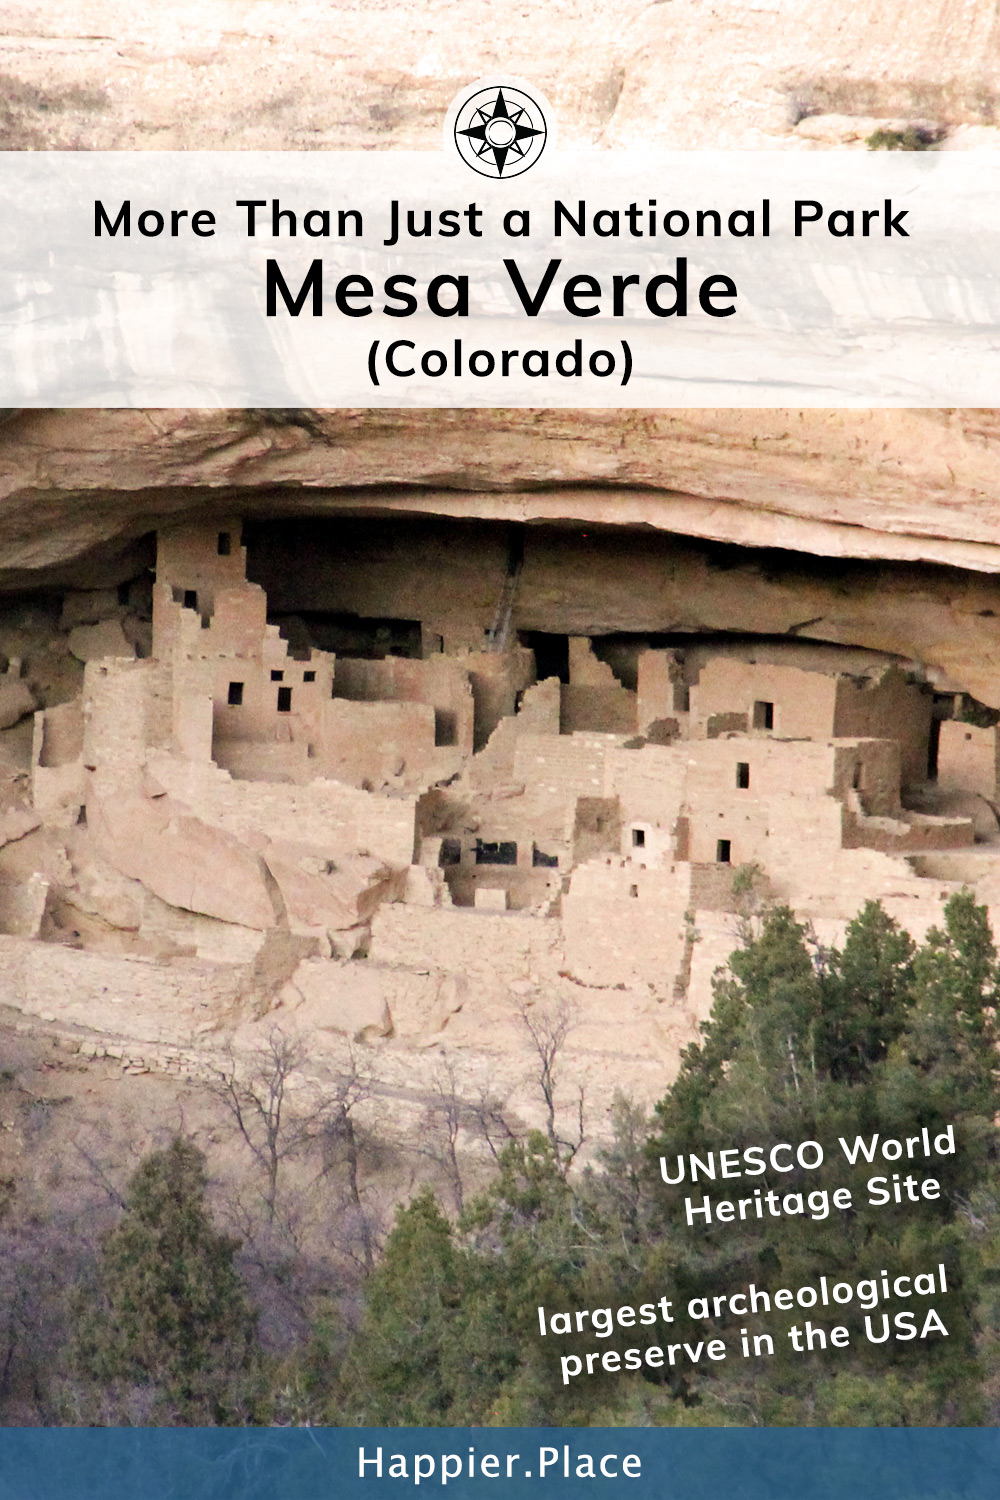 Much More Than Just a U.S. National Park: Mesa Verde (Colorado)